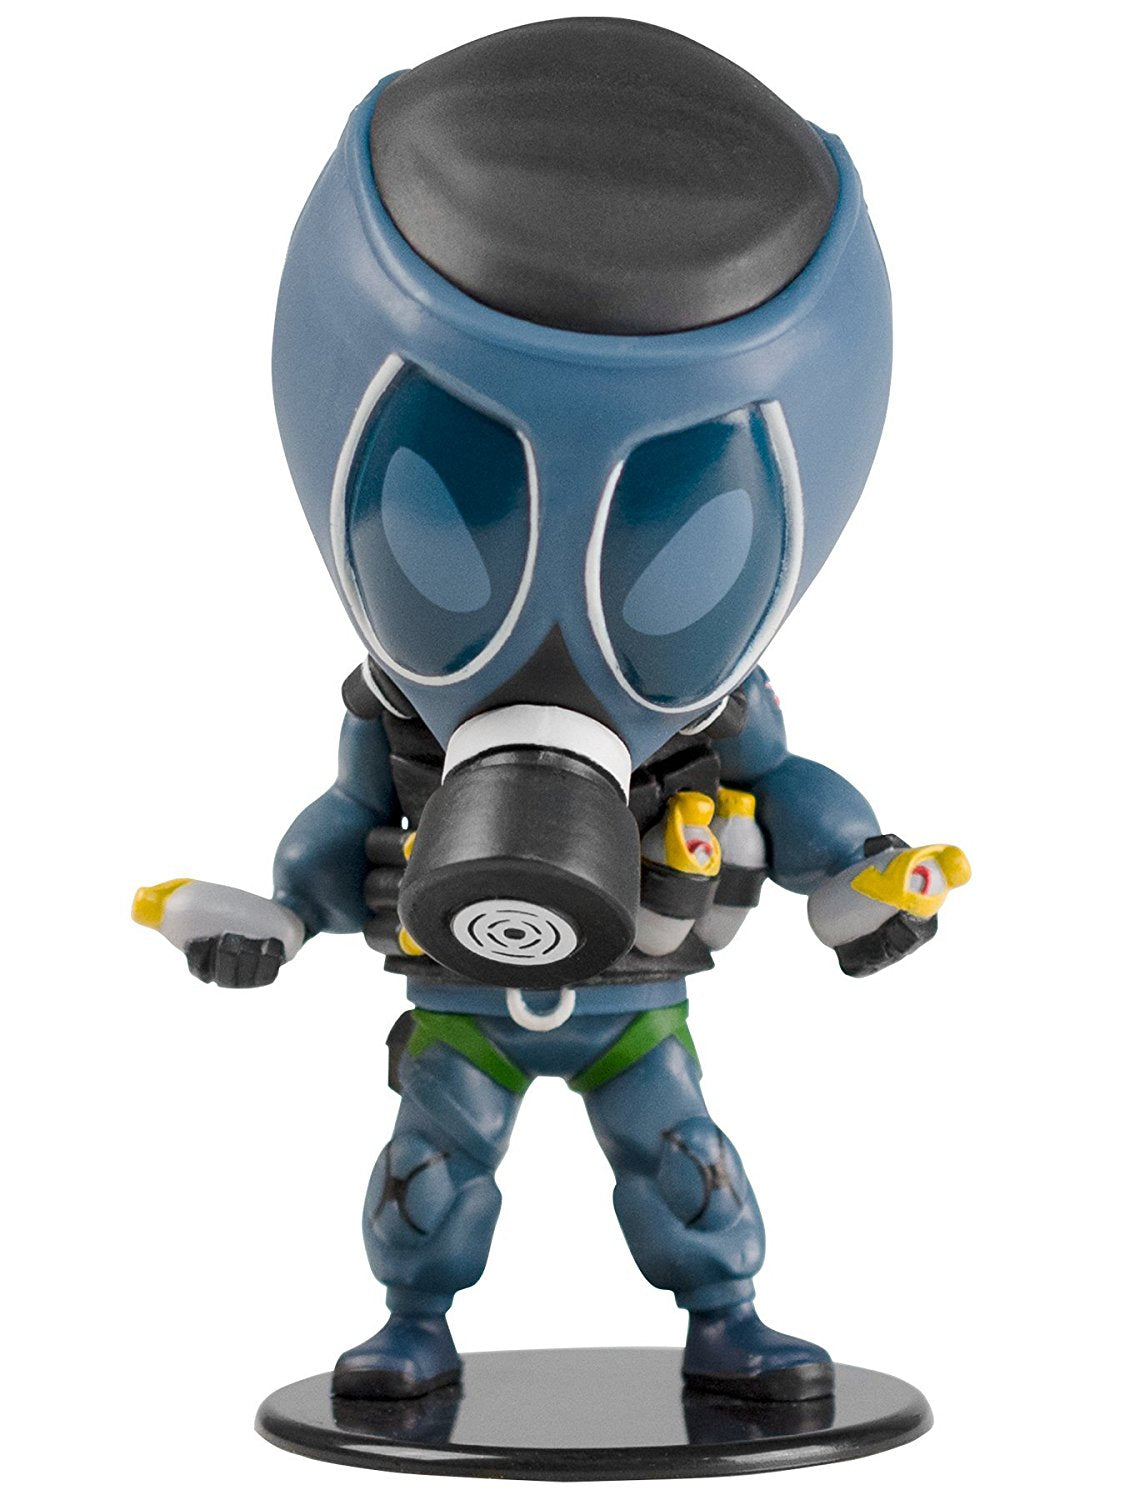 Six Collection Smoke Chibi Figurine